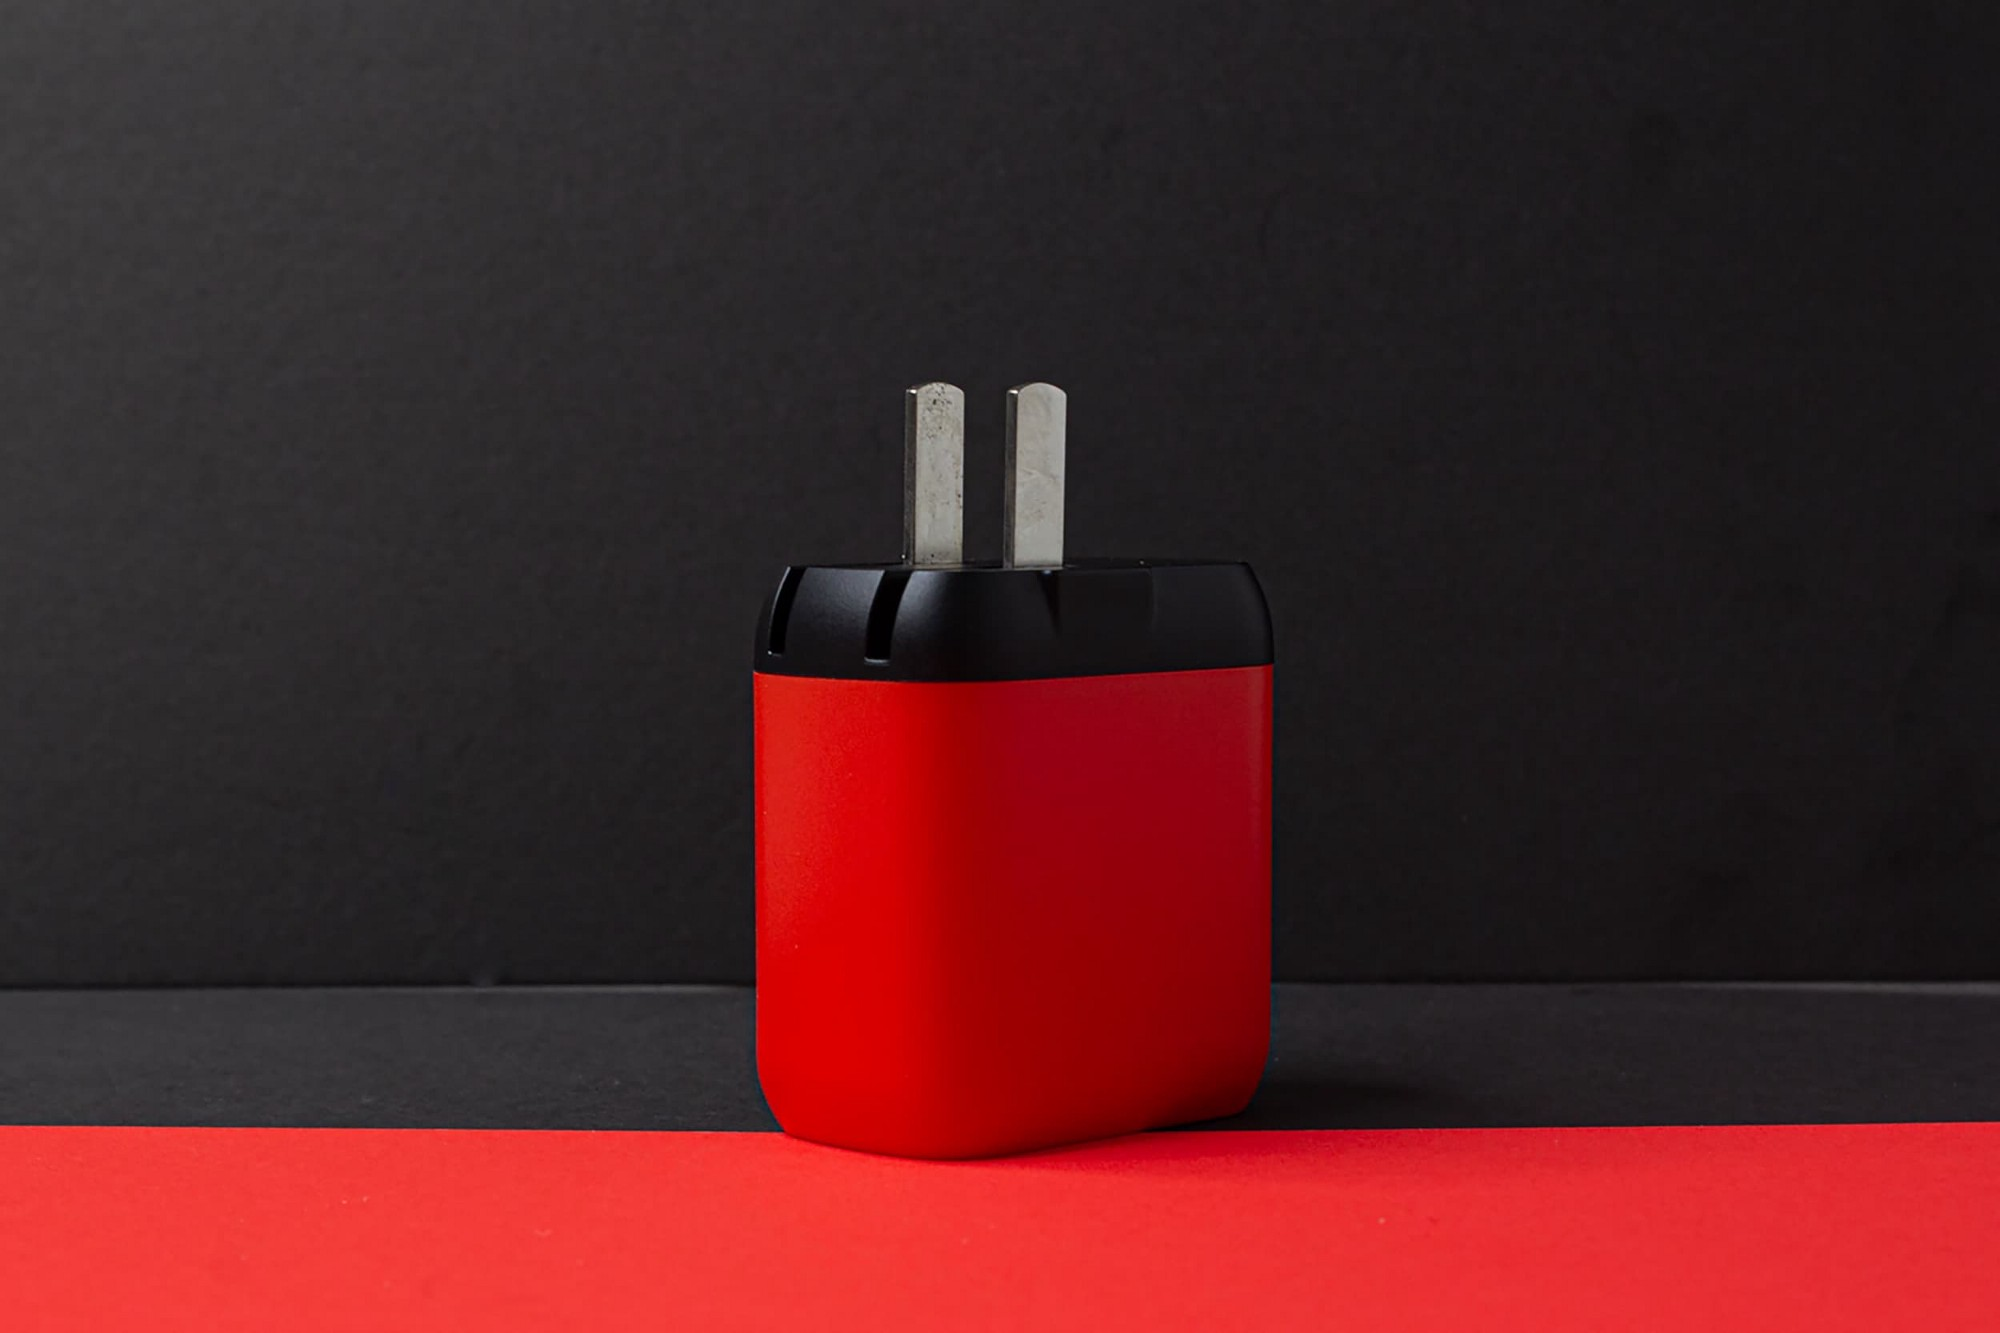 A red, and black coloured plug, sat on a black table